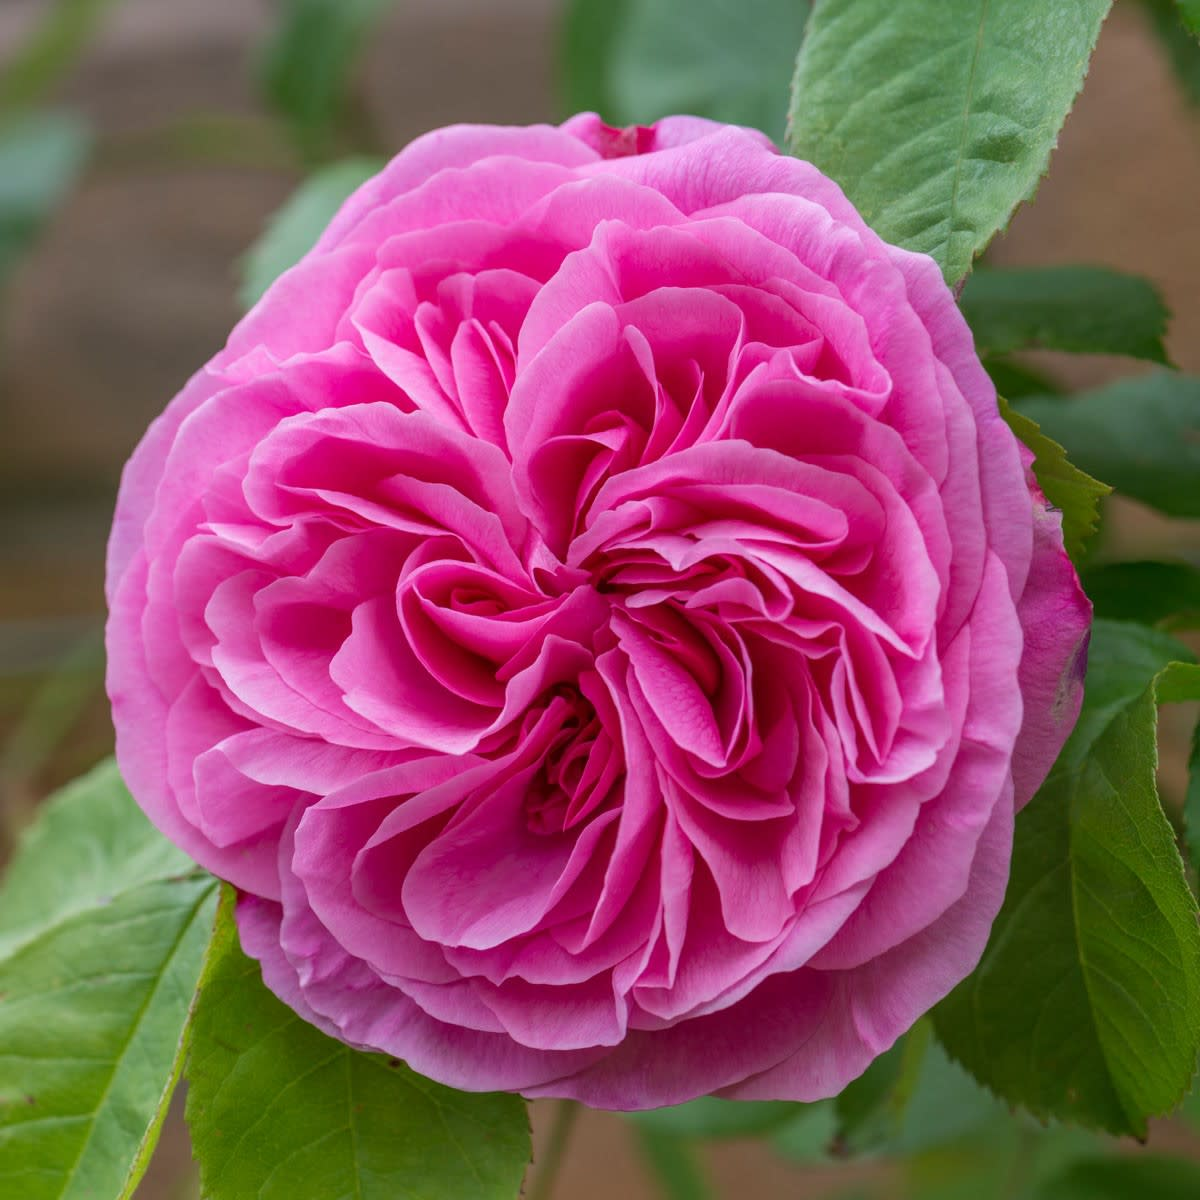 Gertrude Jekyll All roses thrive best if fed regularly, mulched, and sprayed to prevent greenfly and fungal disease